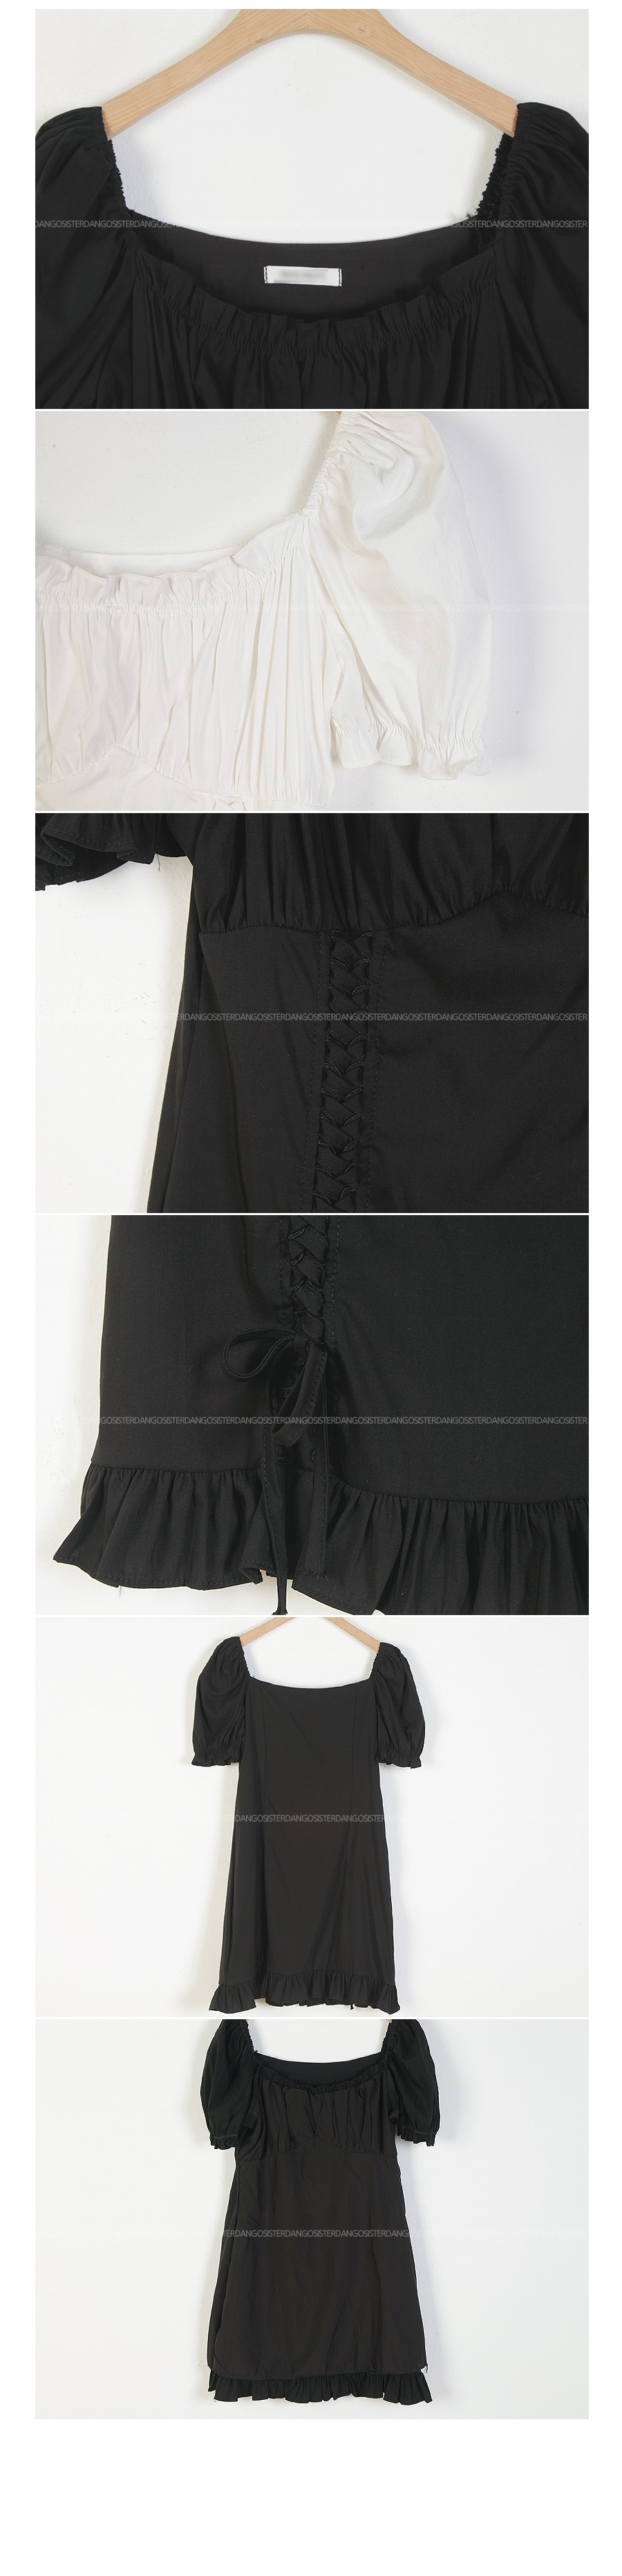 ★Planning★ Femme string mini ops can be produced as an off-shoulder